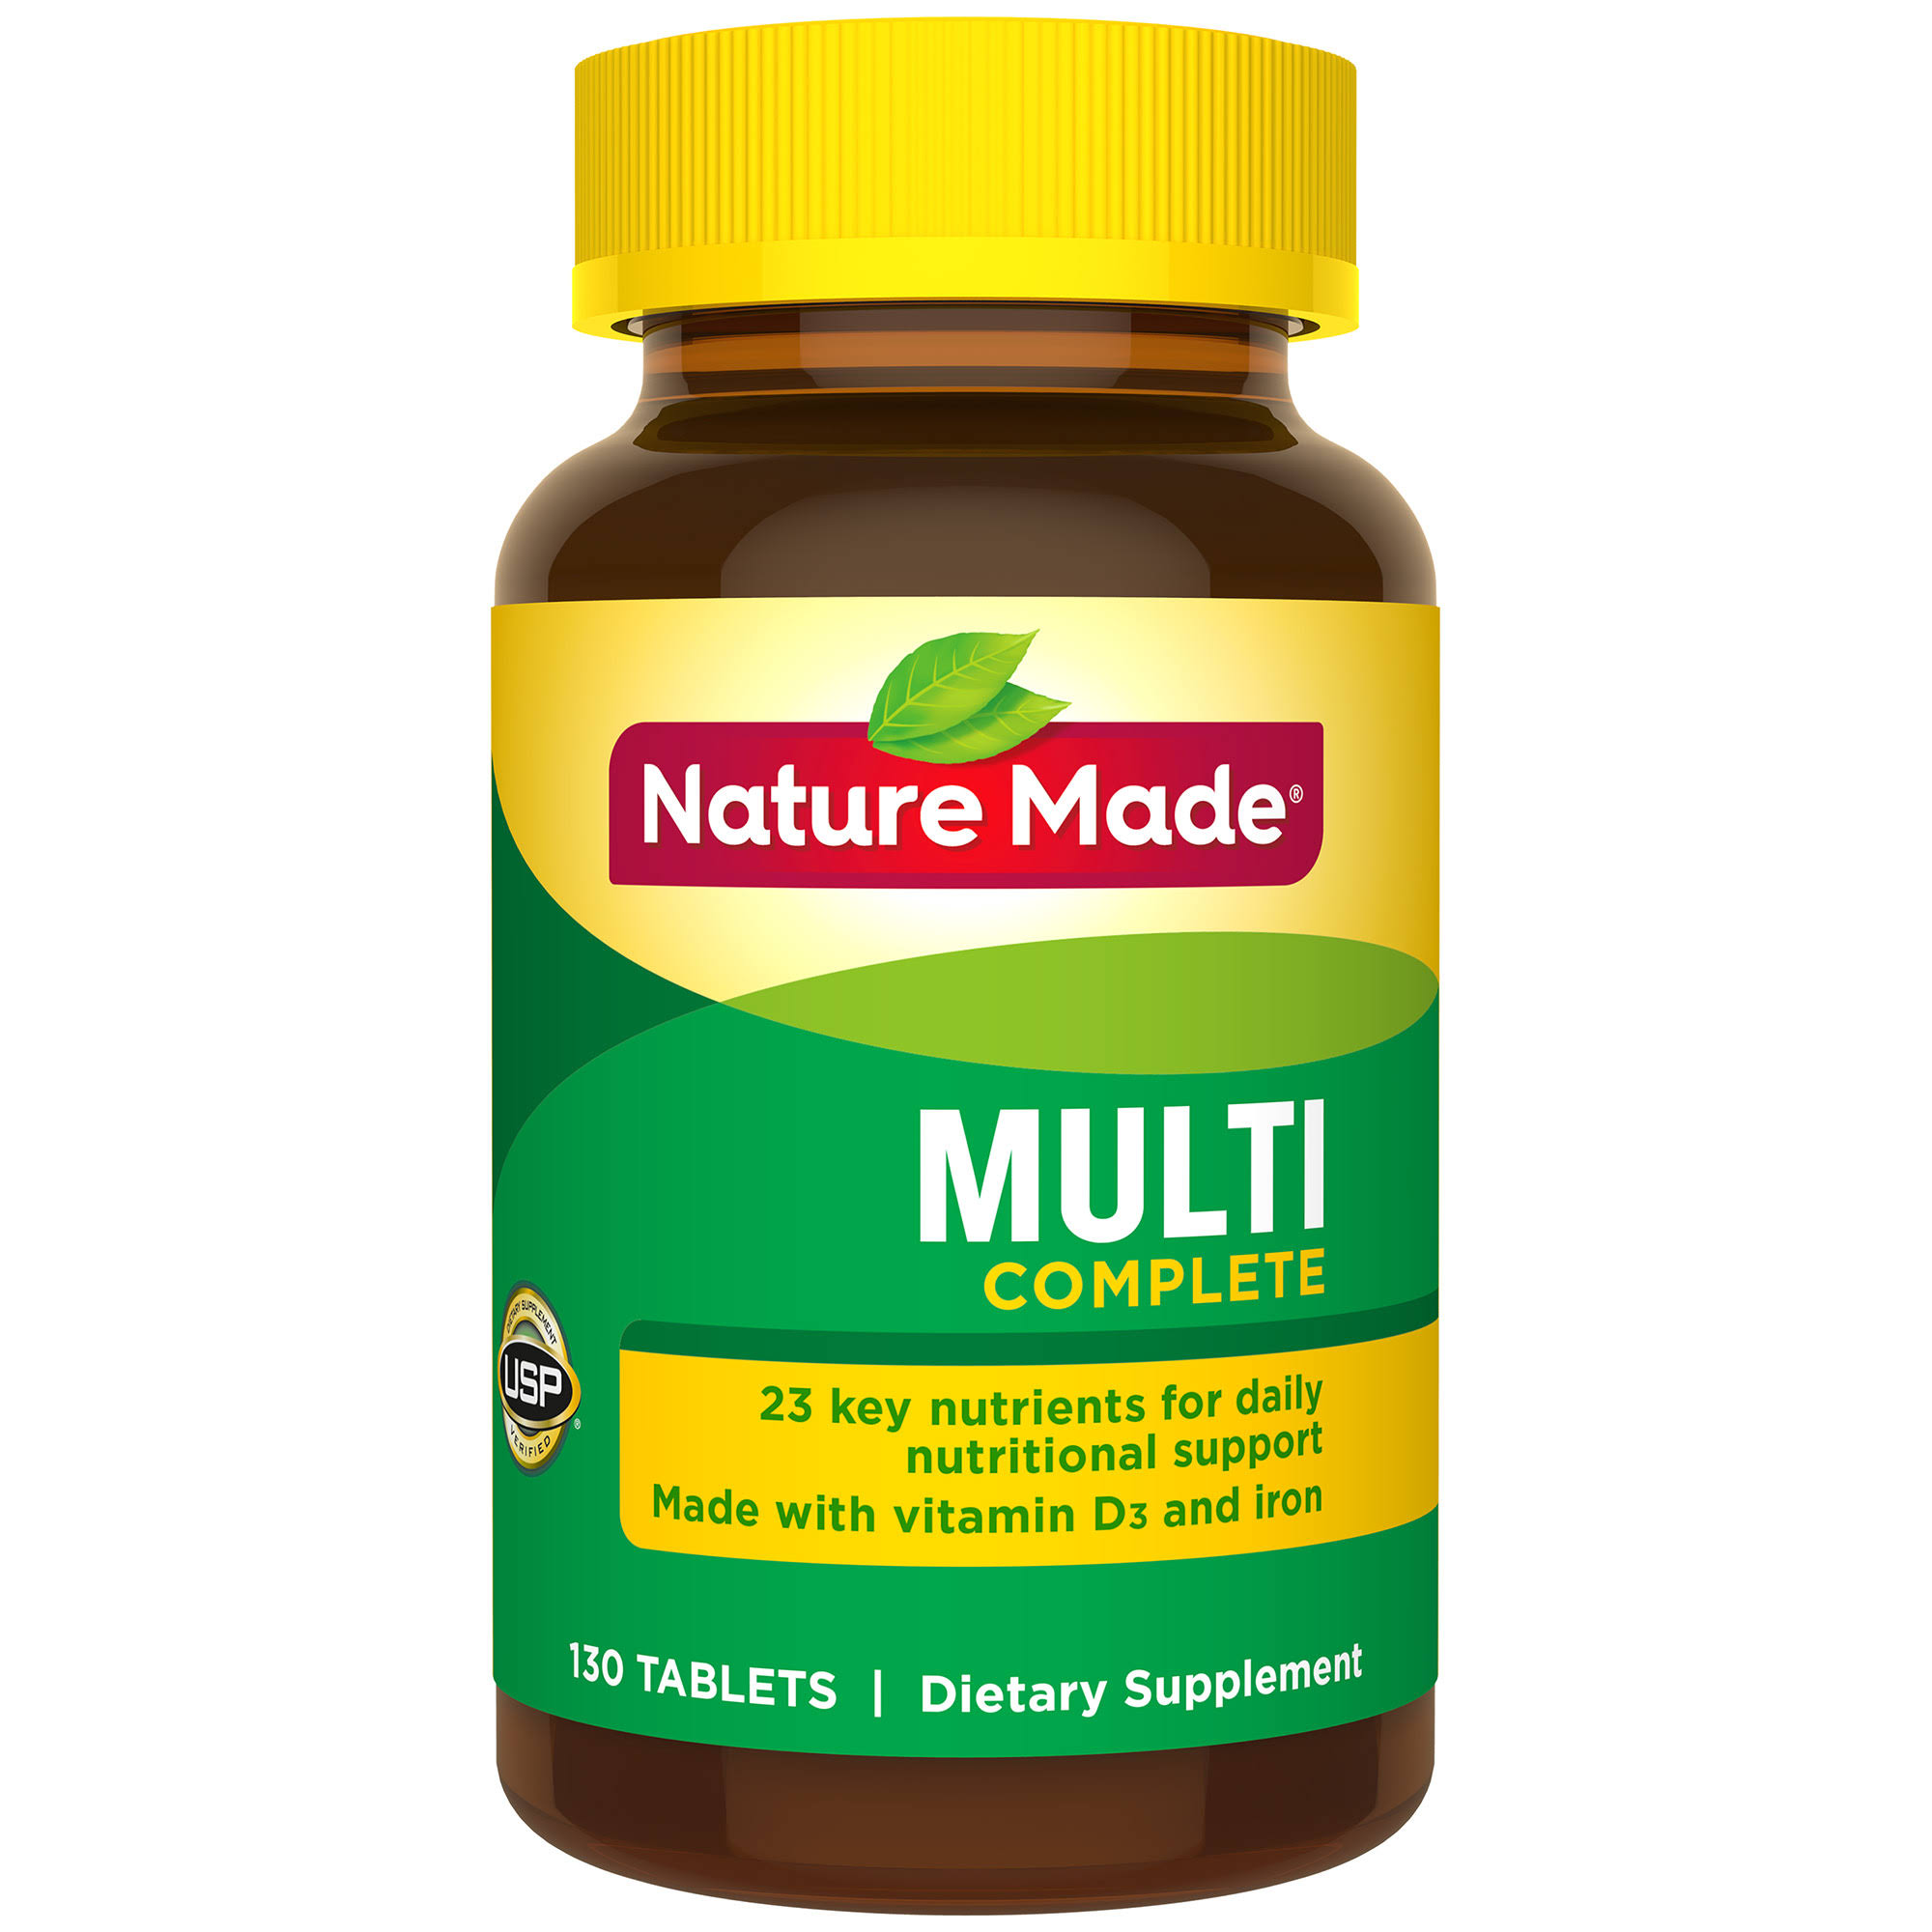 Nature Made Multi Complete Vitamins with Iron Supplement - 130ct